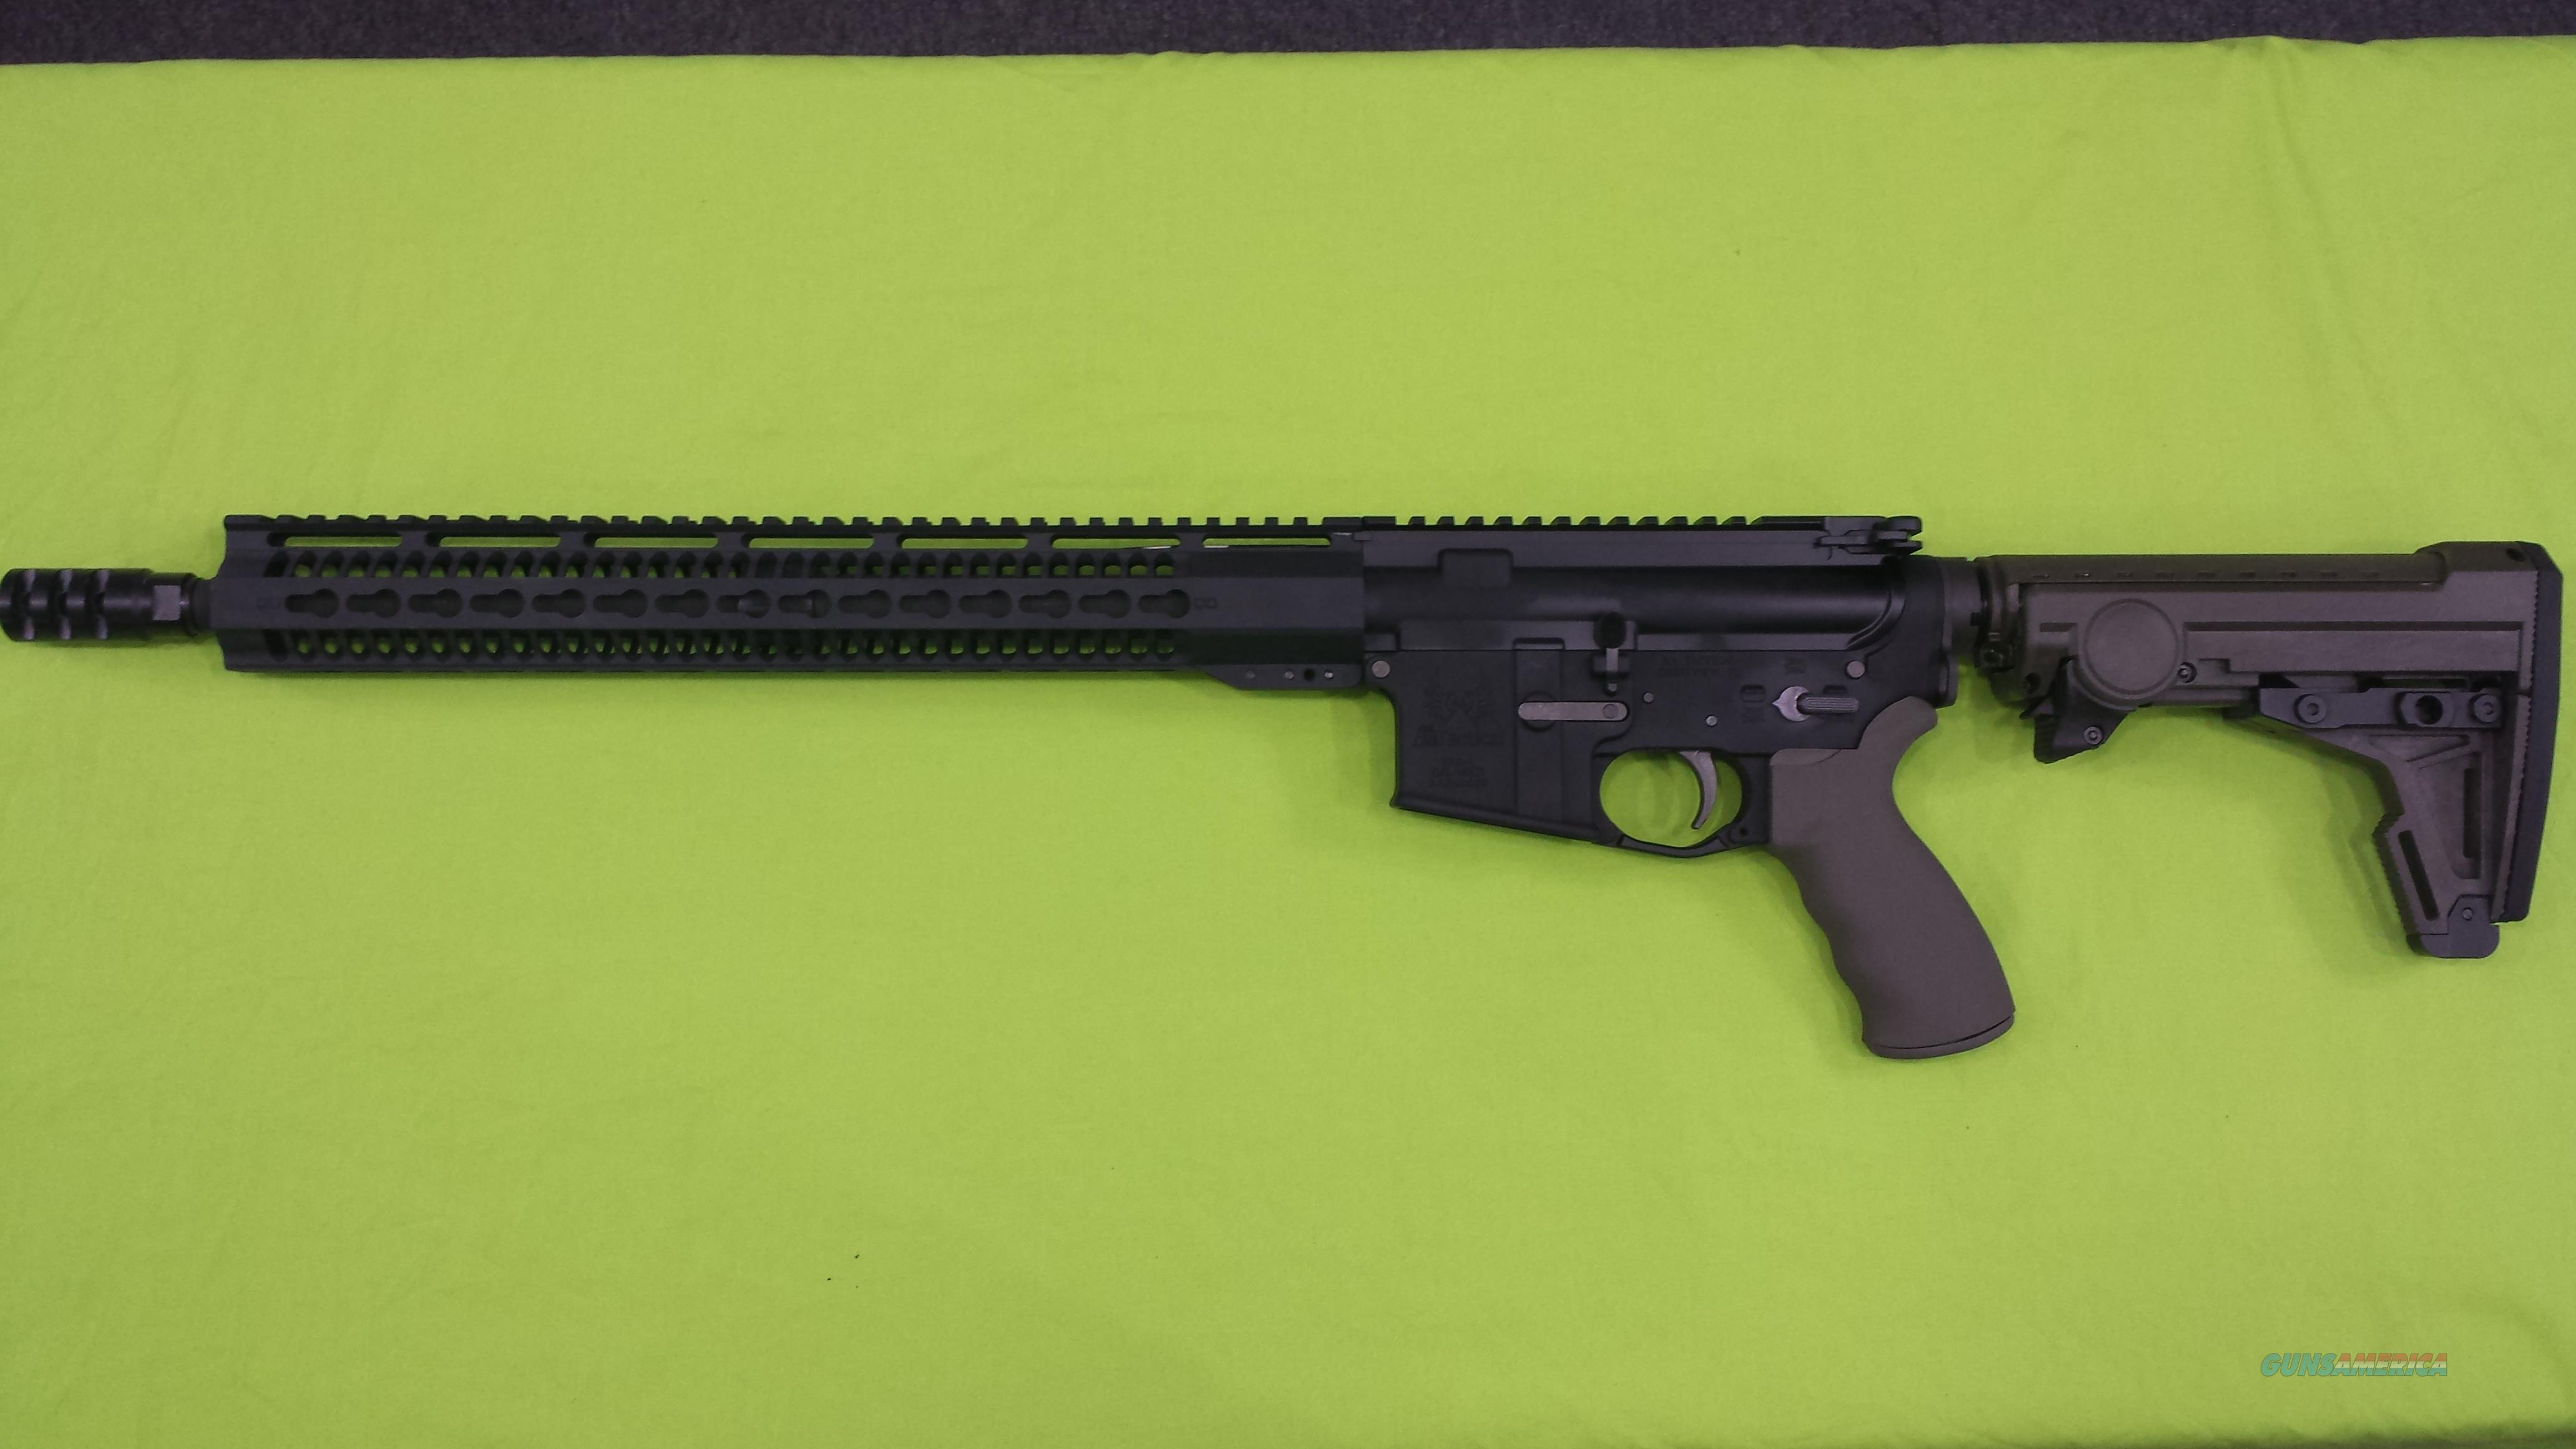 AA TACTICAL TAC-L 300BLK 300 AAC ERGO 8 POS OD GREEN ODG AR15   Guns > Rifles > AR-15 Rifles - Small Manufacturers > Complete Rifle